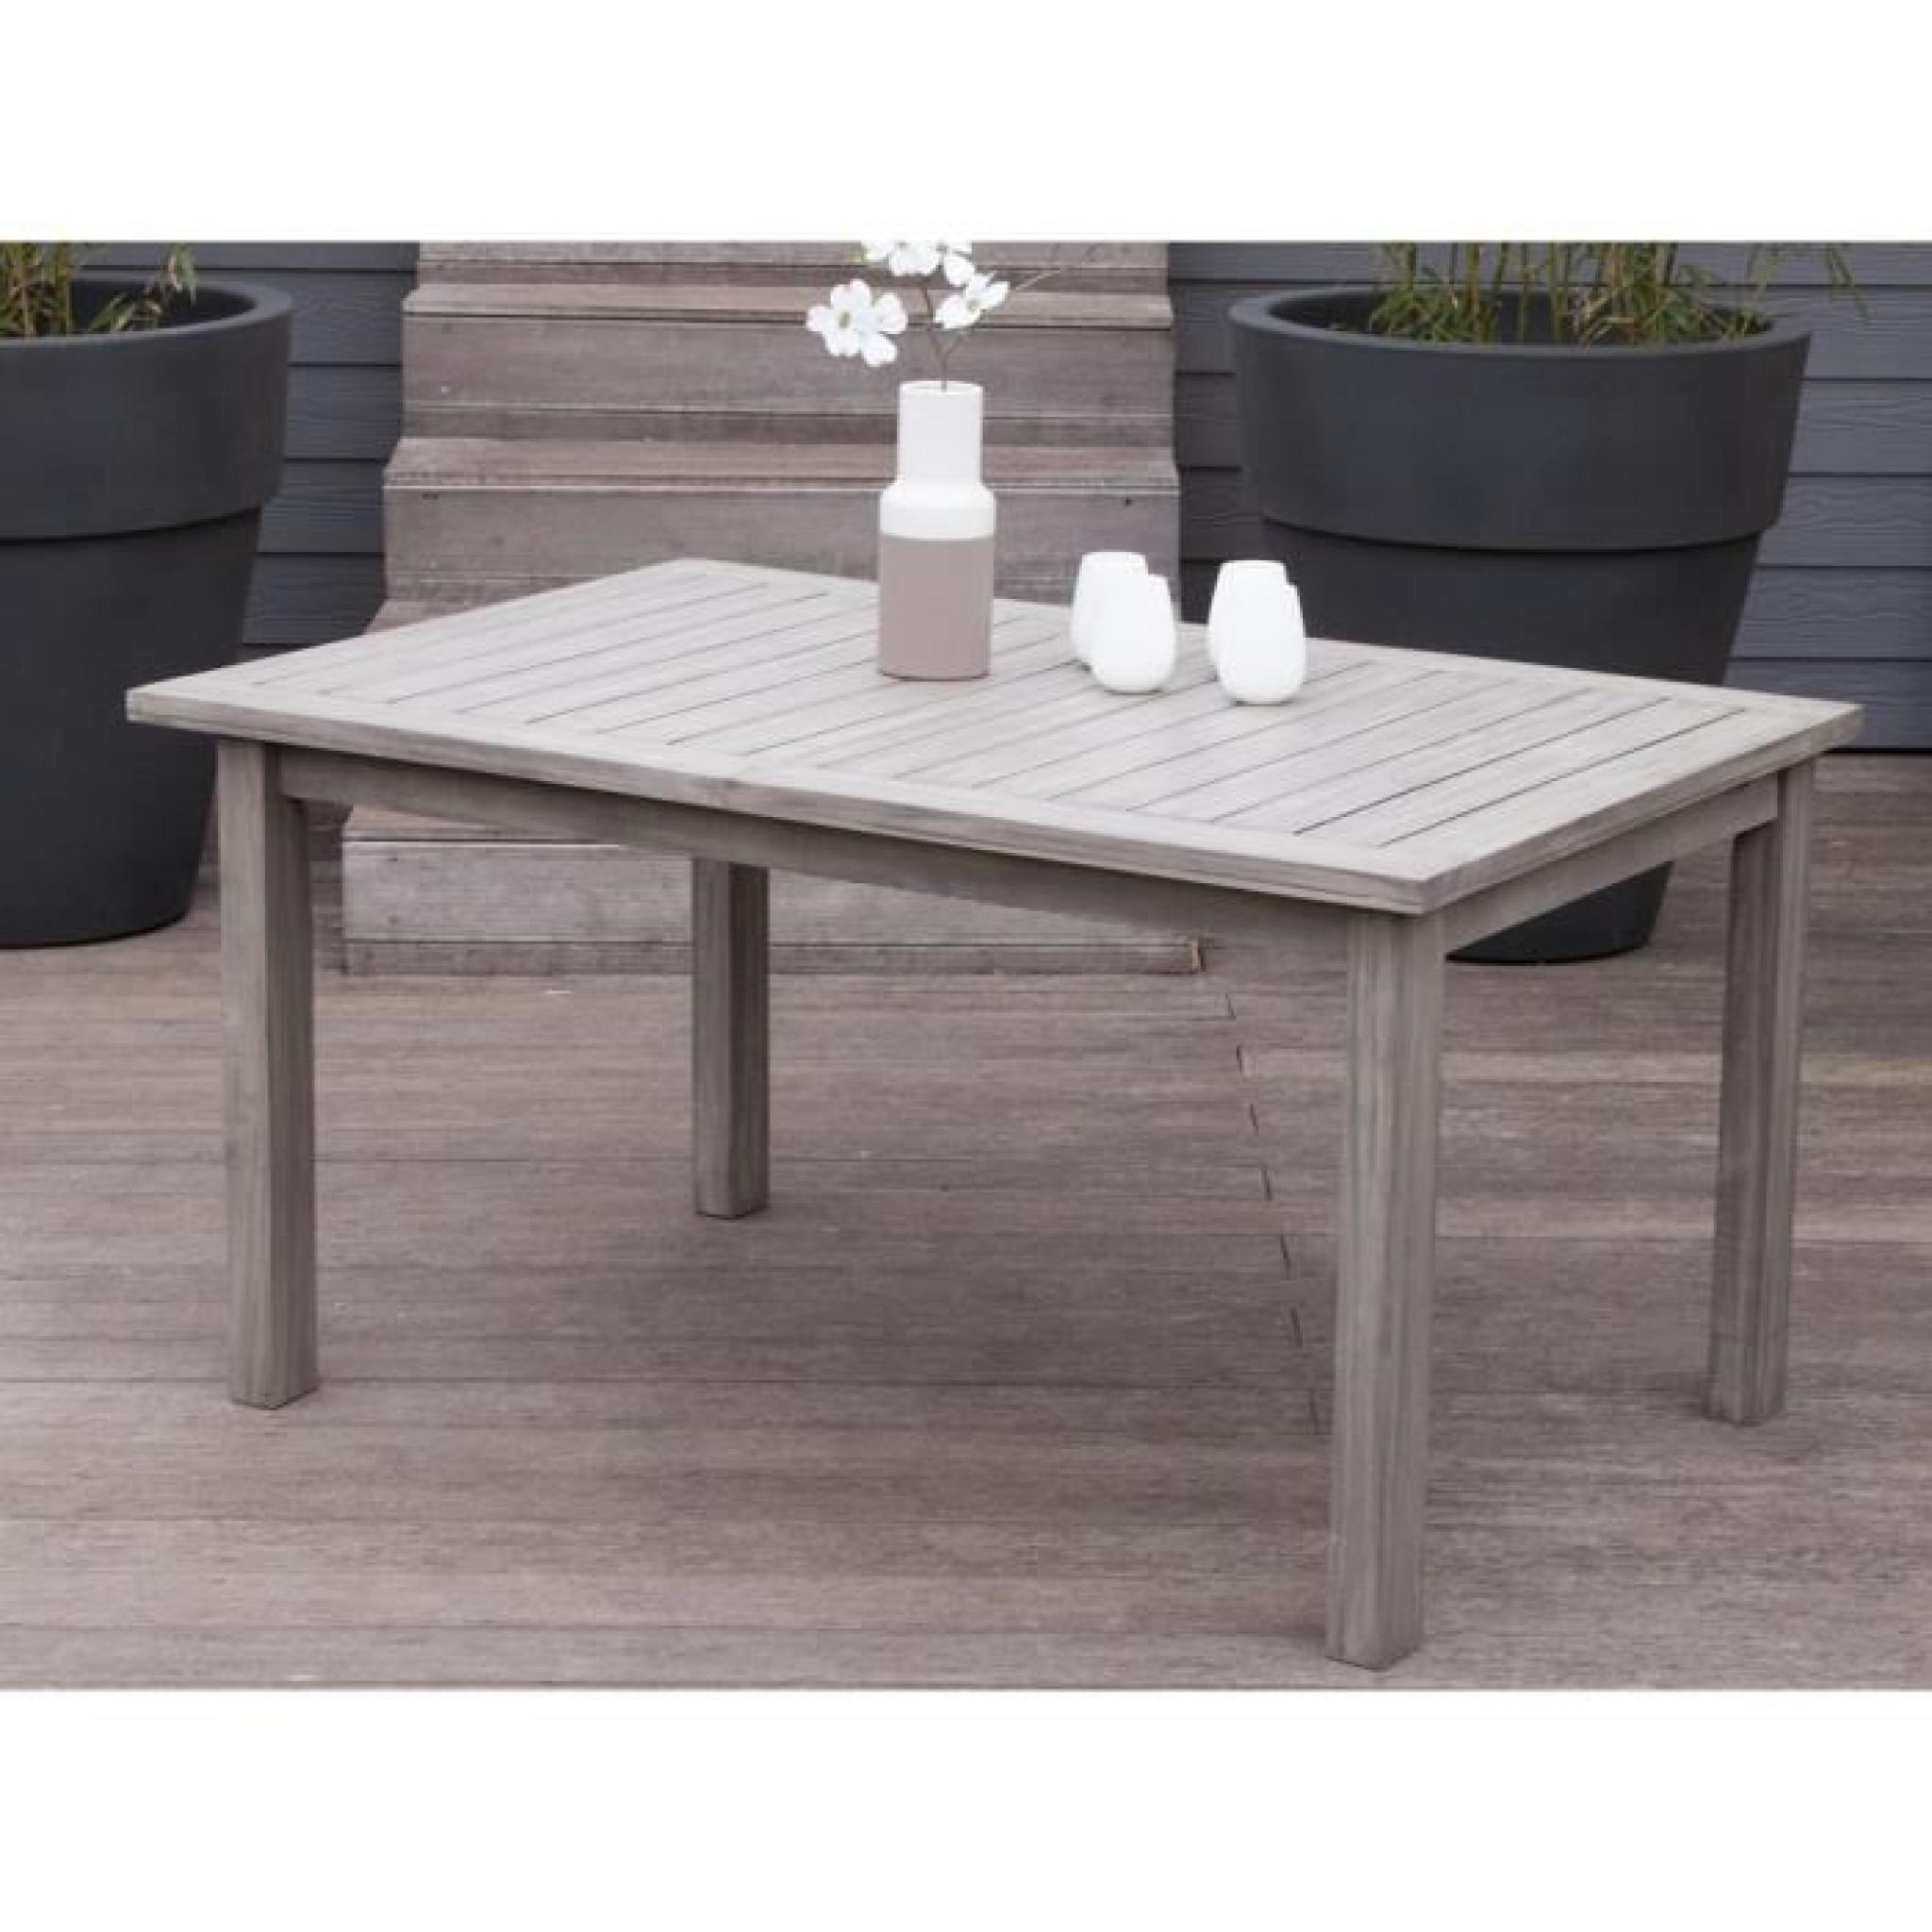 Table De Jardin Extensible Pas Cher Table De Jardin Extensible En Acacia 150 200x100cm Silverwood